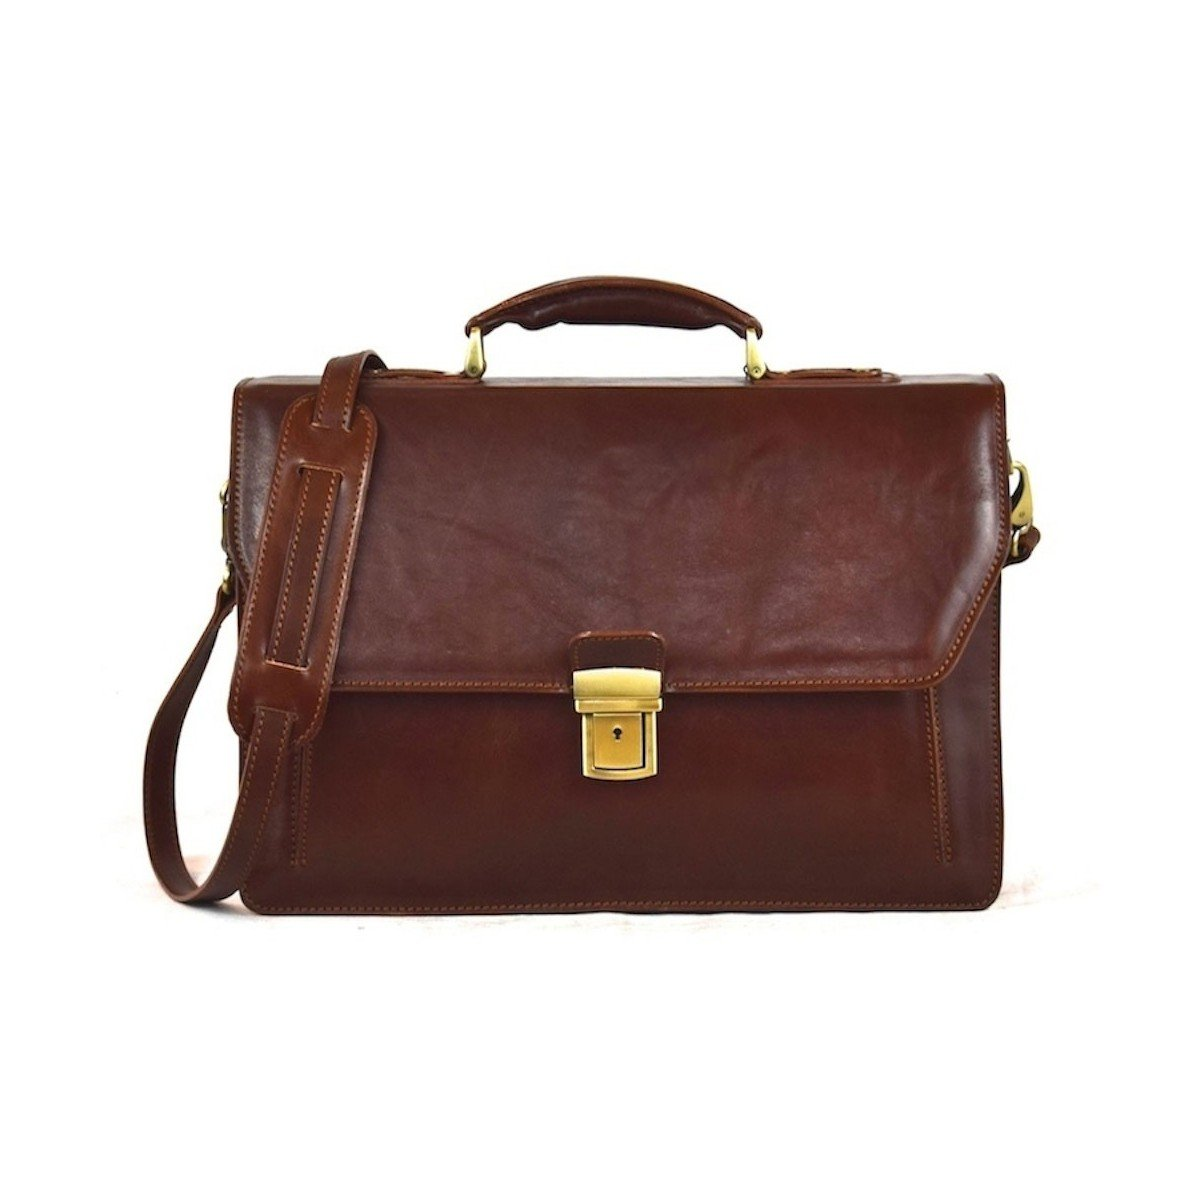 Made In Italy Business Leather Bag- Amadriadi Color Brown - Business Bag B018W370TU